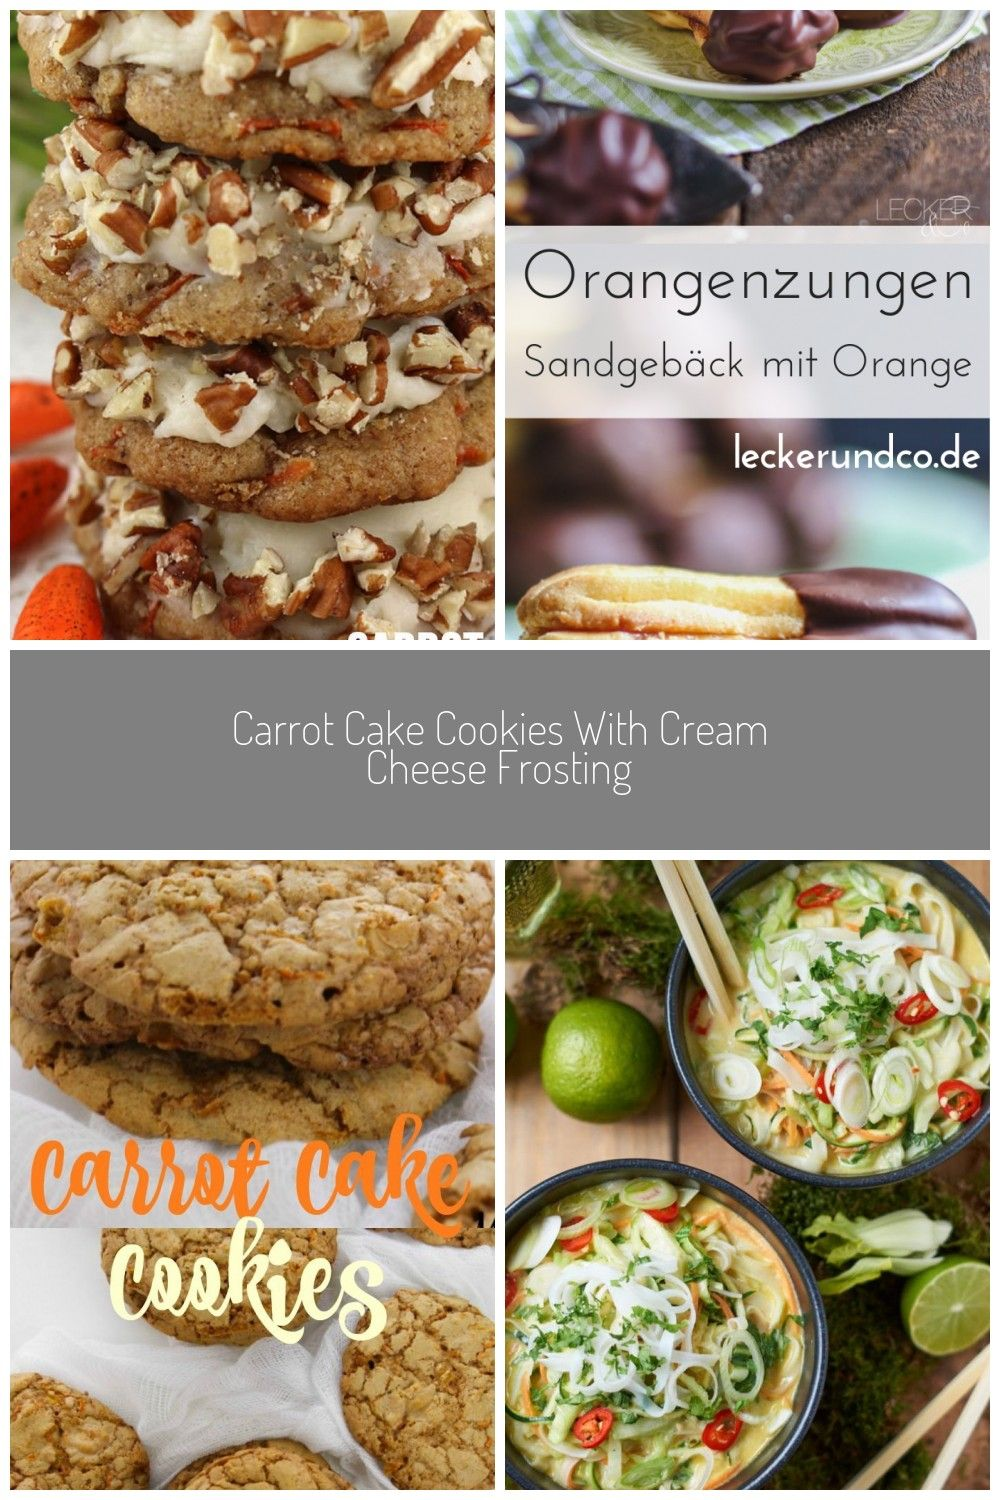 Carrot cake cookies with cream cheese frosting are the